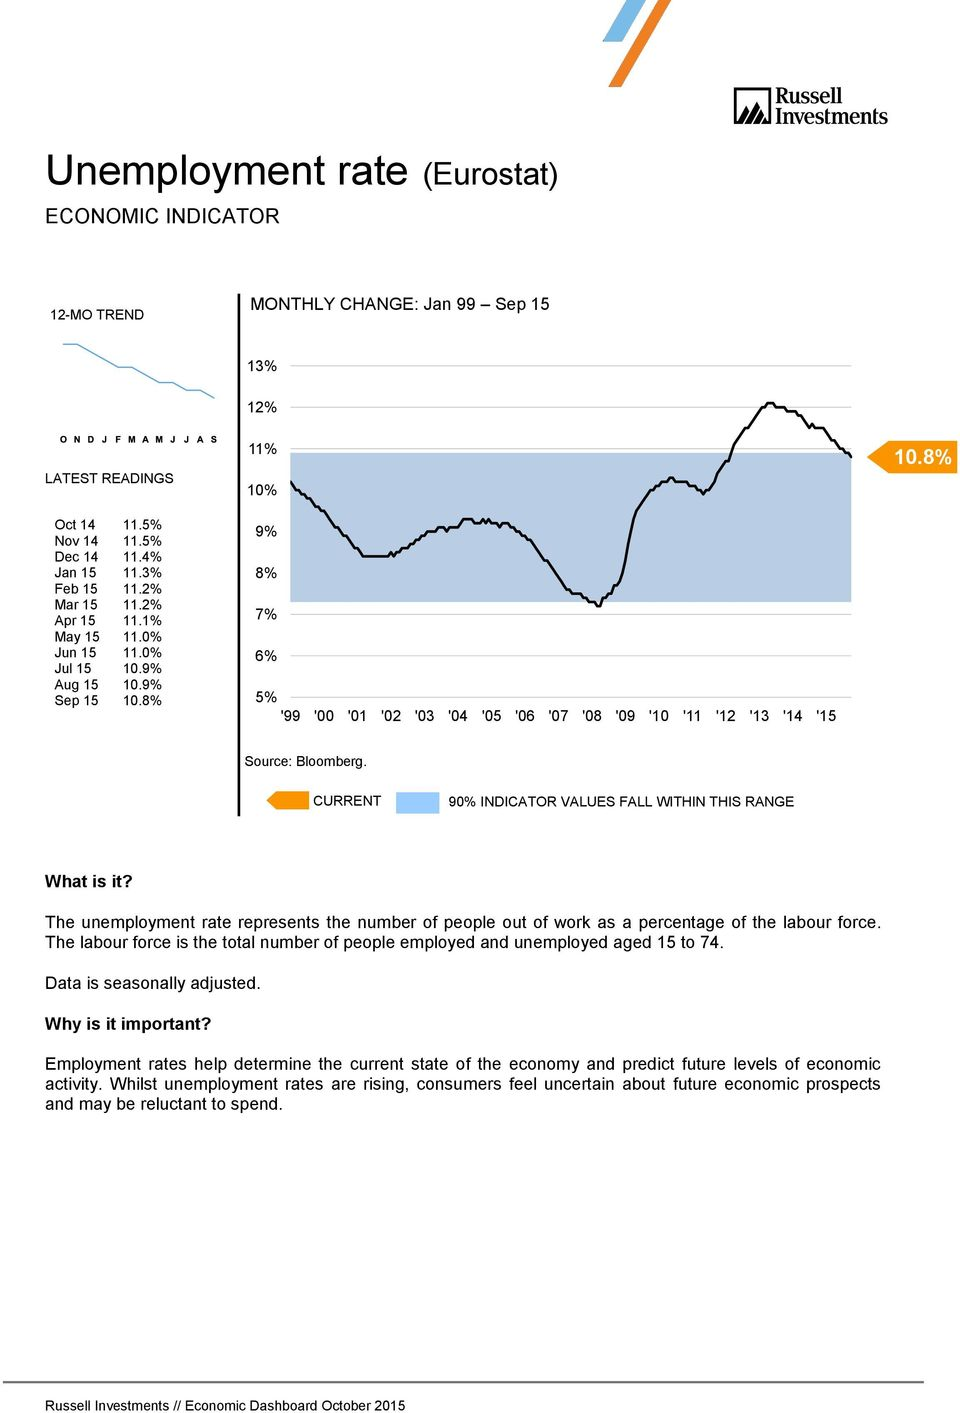 8% 90% INDICATOR VALUES FALL WITHIN THIS RANGE The unemployment rate represents the number of people out of work as a percentage of the labour force.